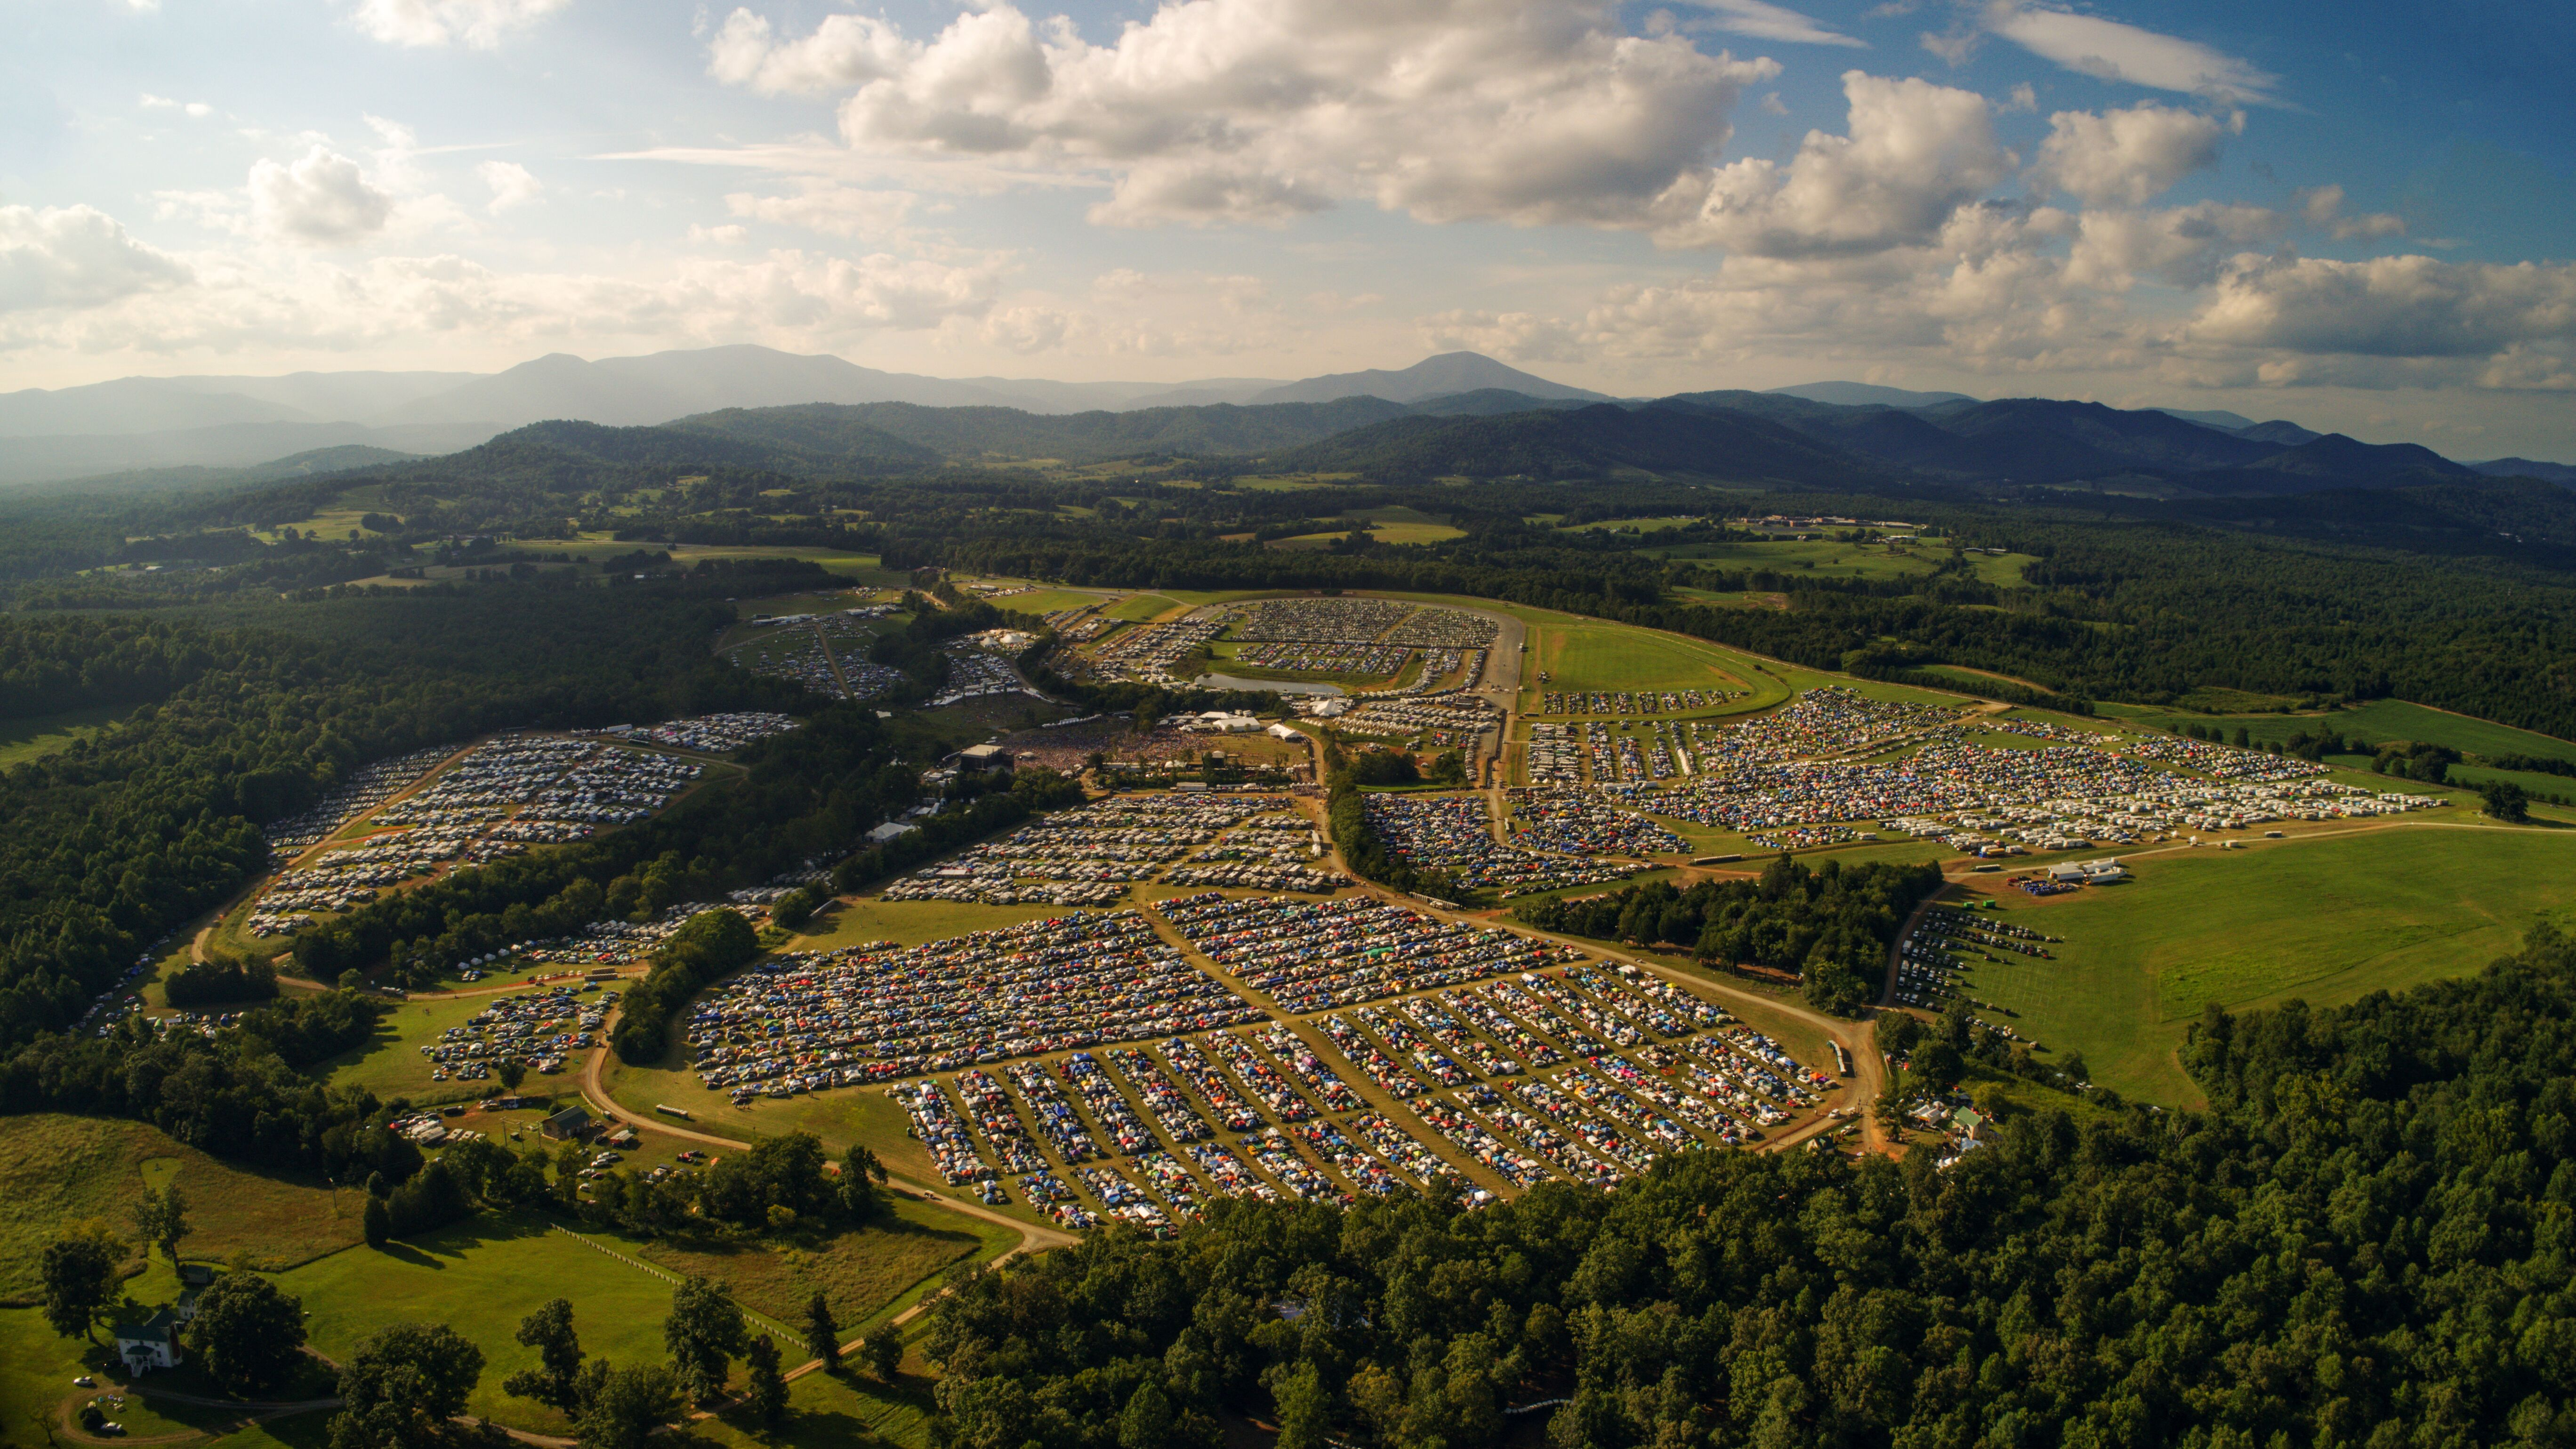 Overland Expo East Moves to Arrington, Virginia and Announces Dates